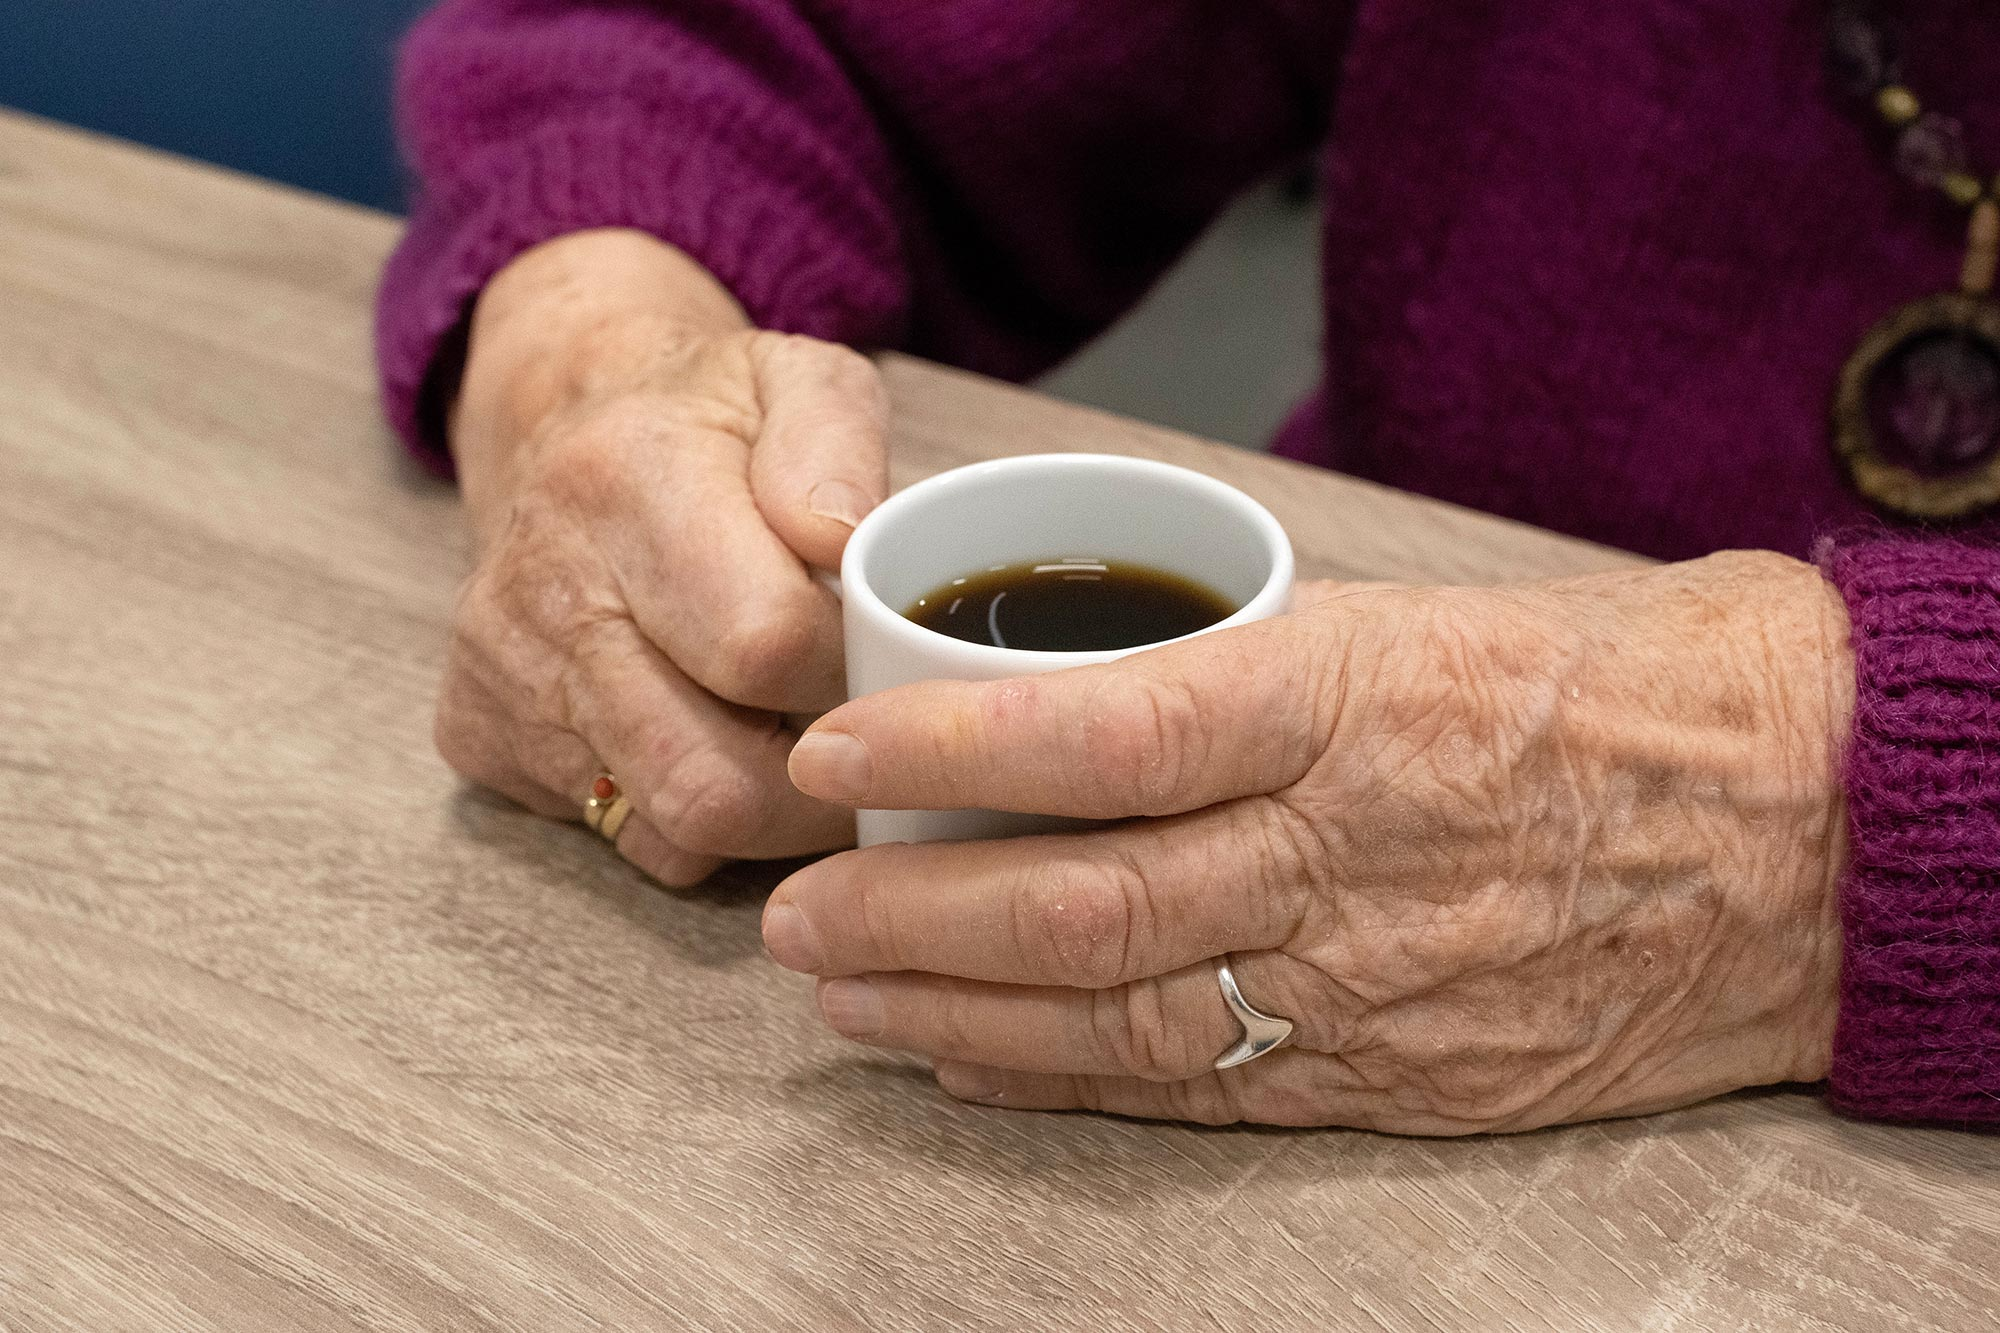 Even in People With Parkinson's Gene, Coffee May Help Protect Against the Disease